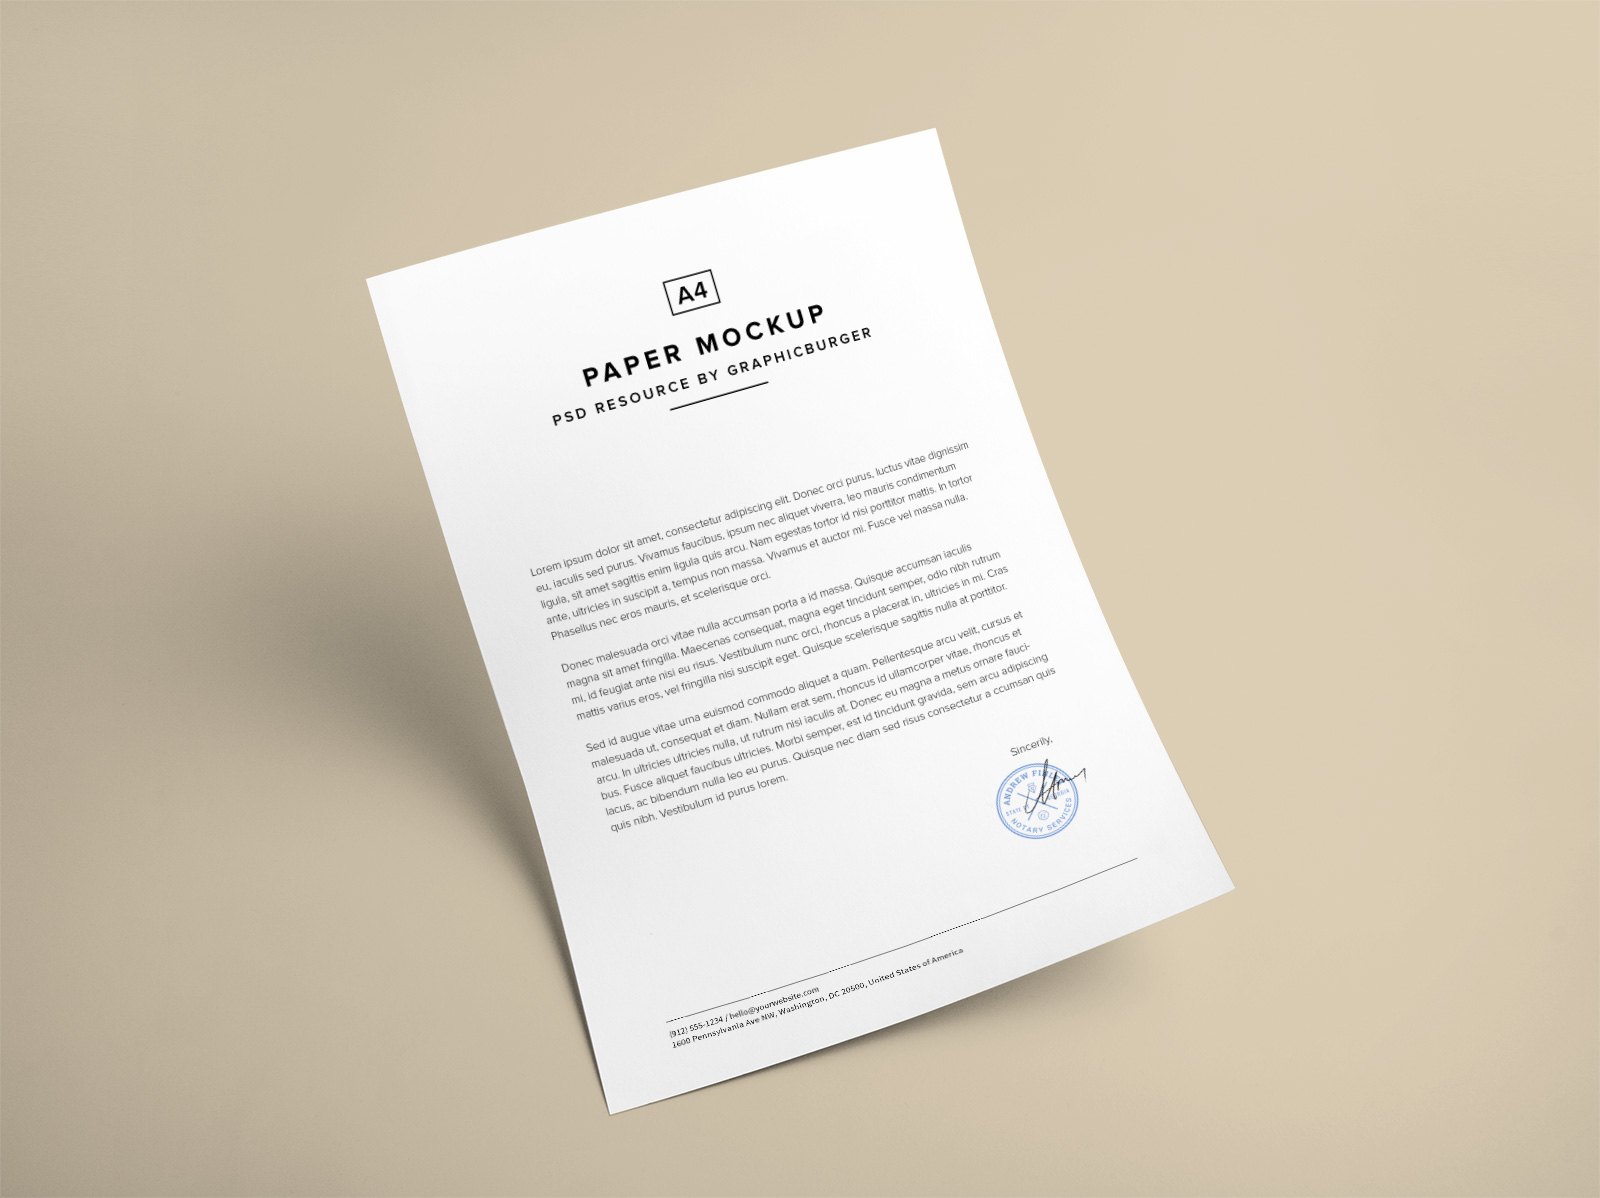 Free-A4-Paper-Mockup-PSD-file